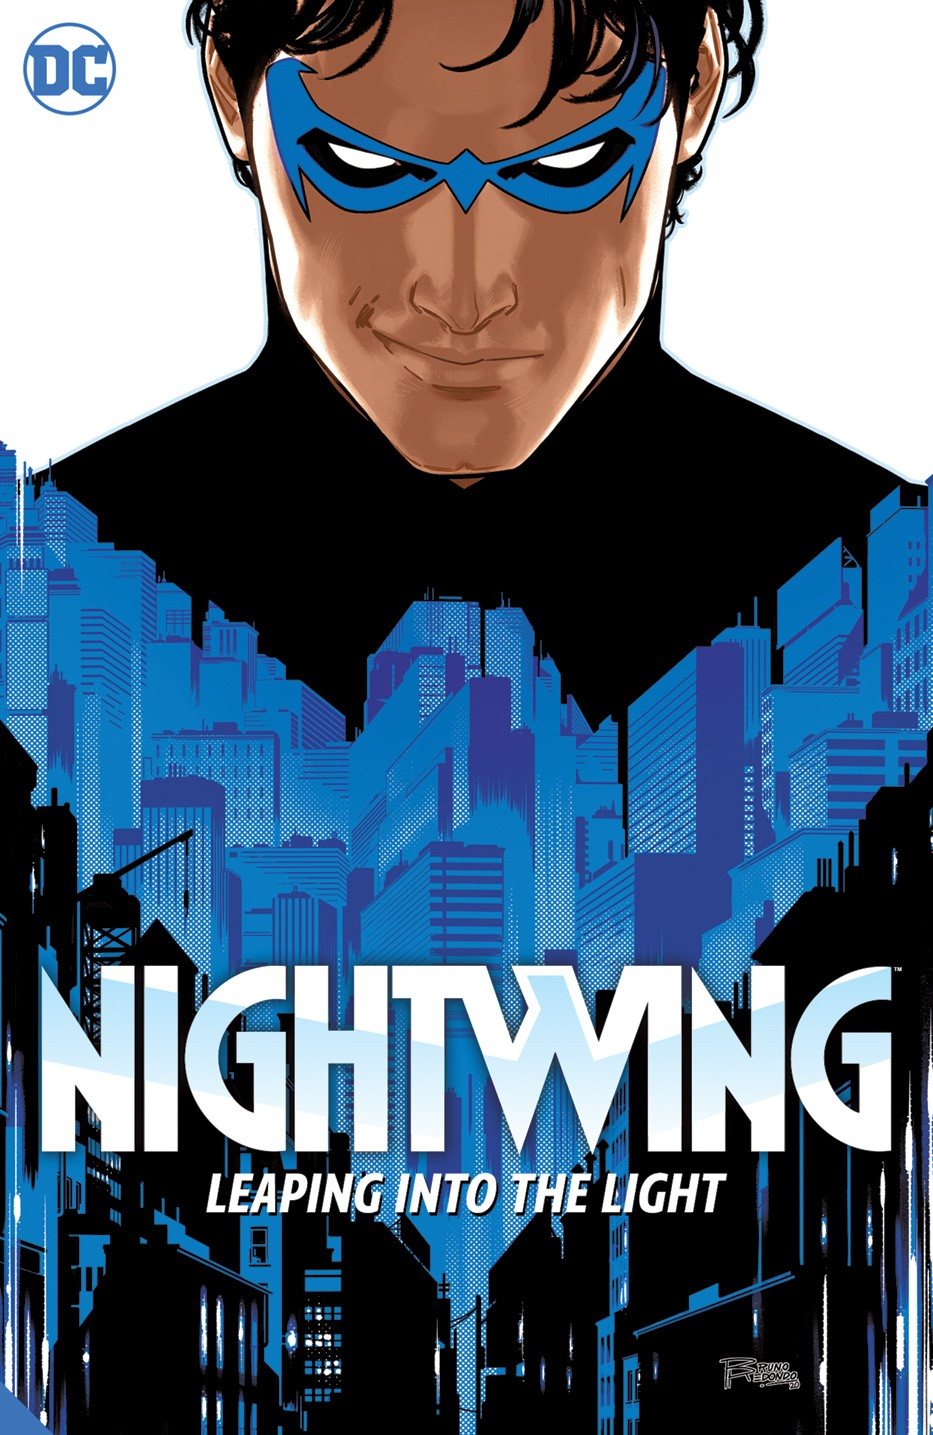 Nightwing-Vol1-Leaping-Into-The-Light DC Comics November 2021 Solicitations